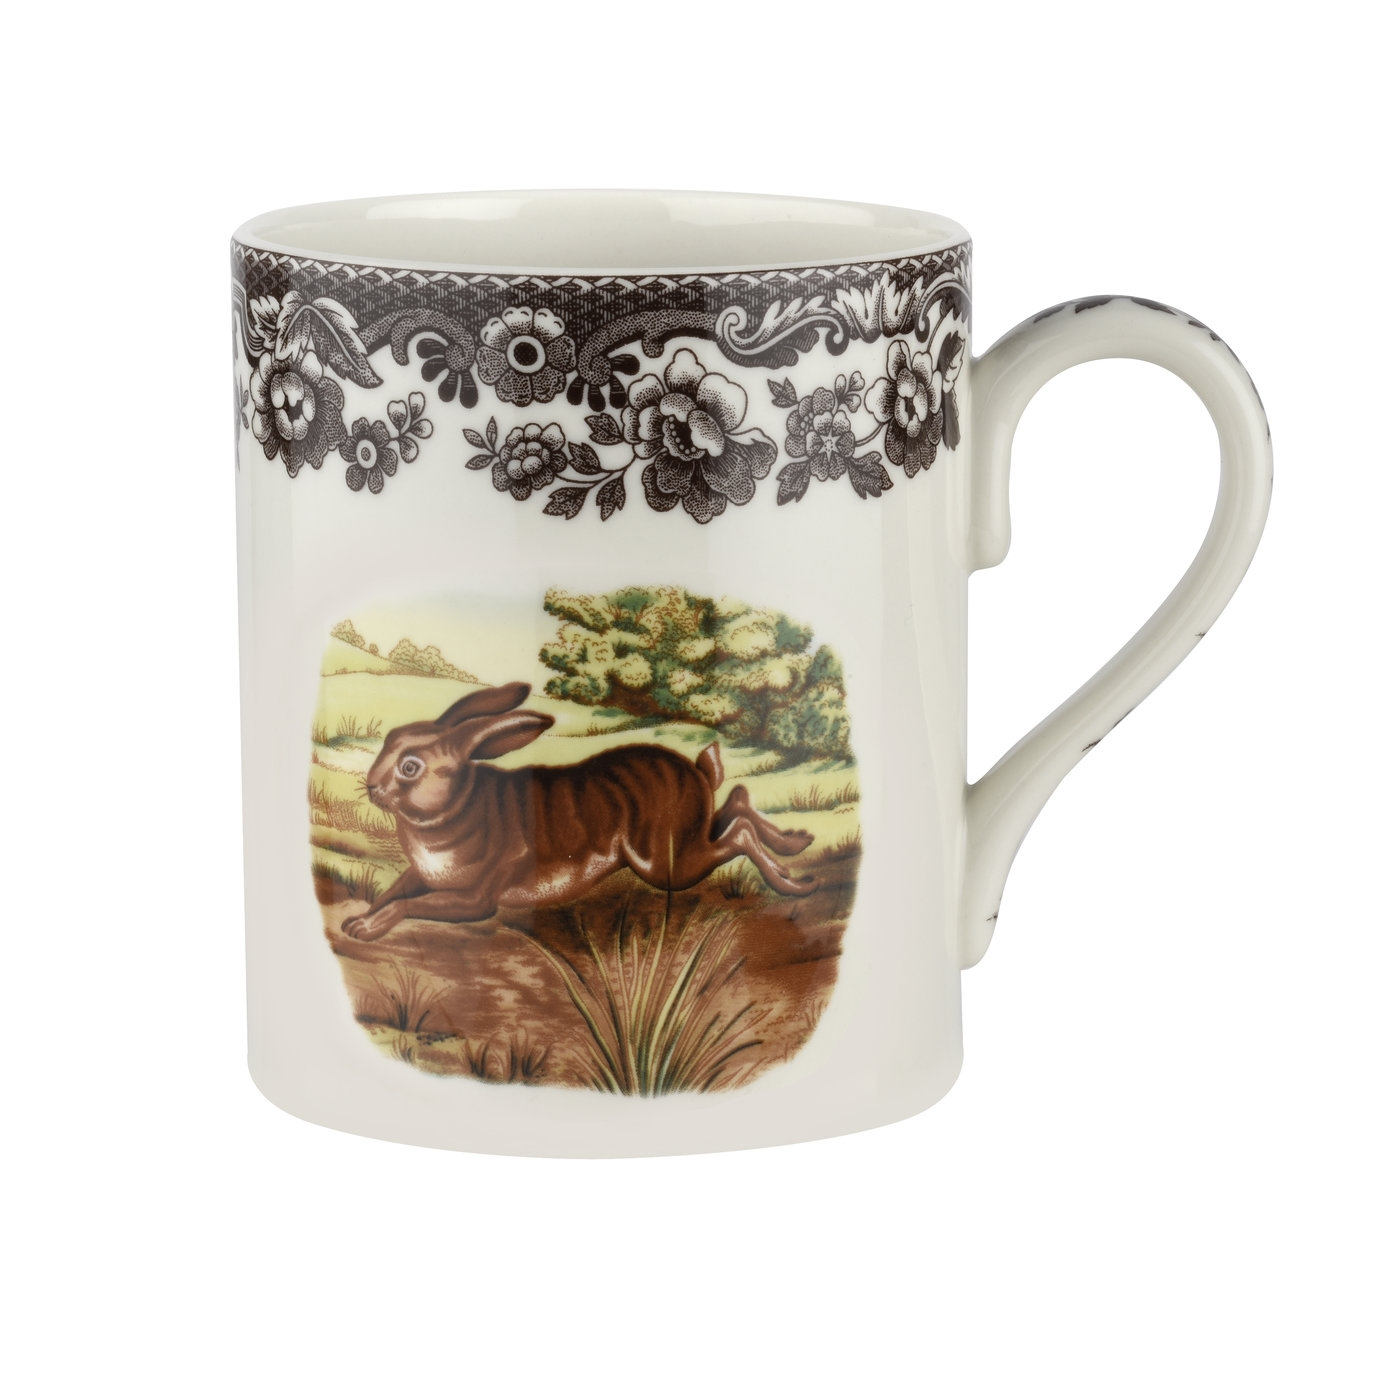 Spode Woodland 16 oz Mug (Rabbit) image number 0